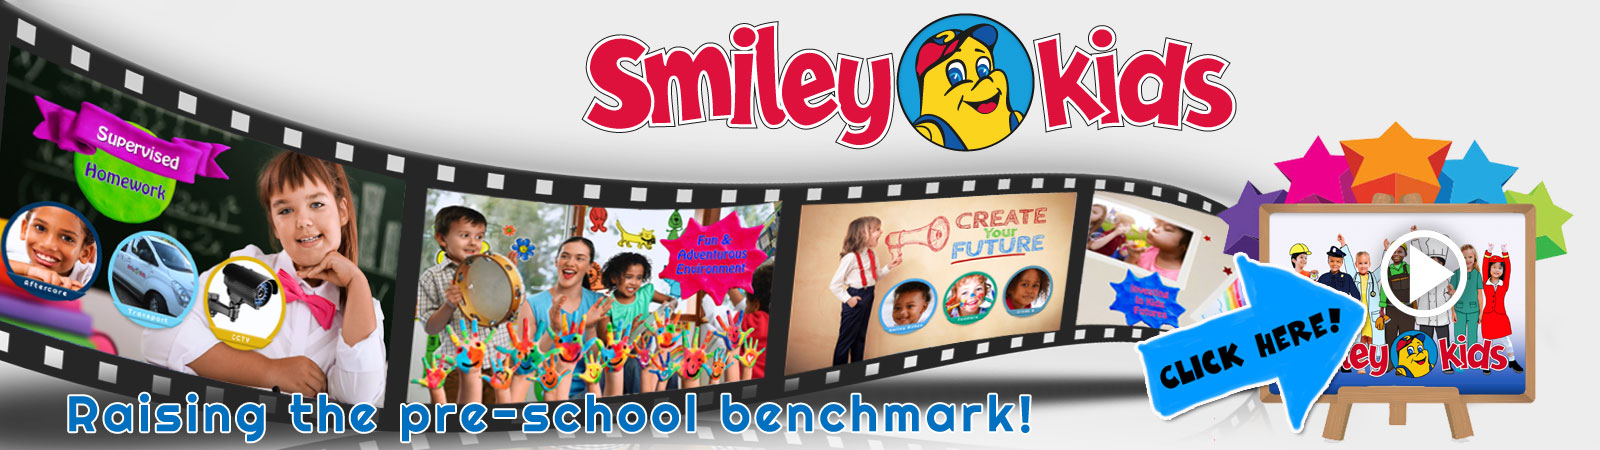 Smiley Kids Glen Marais Video